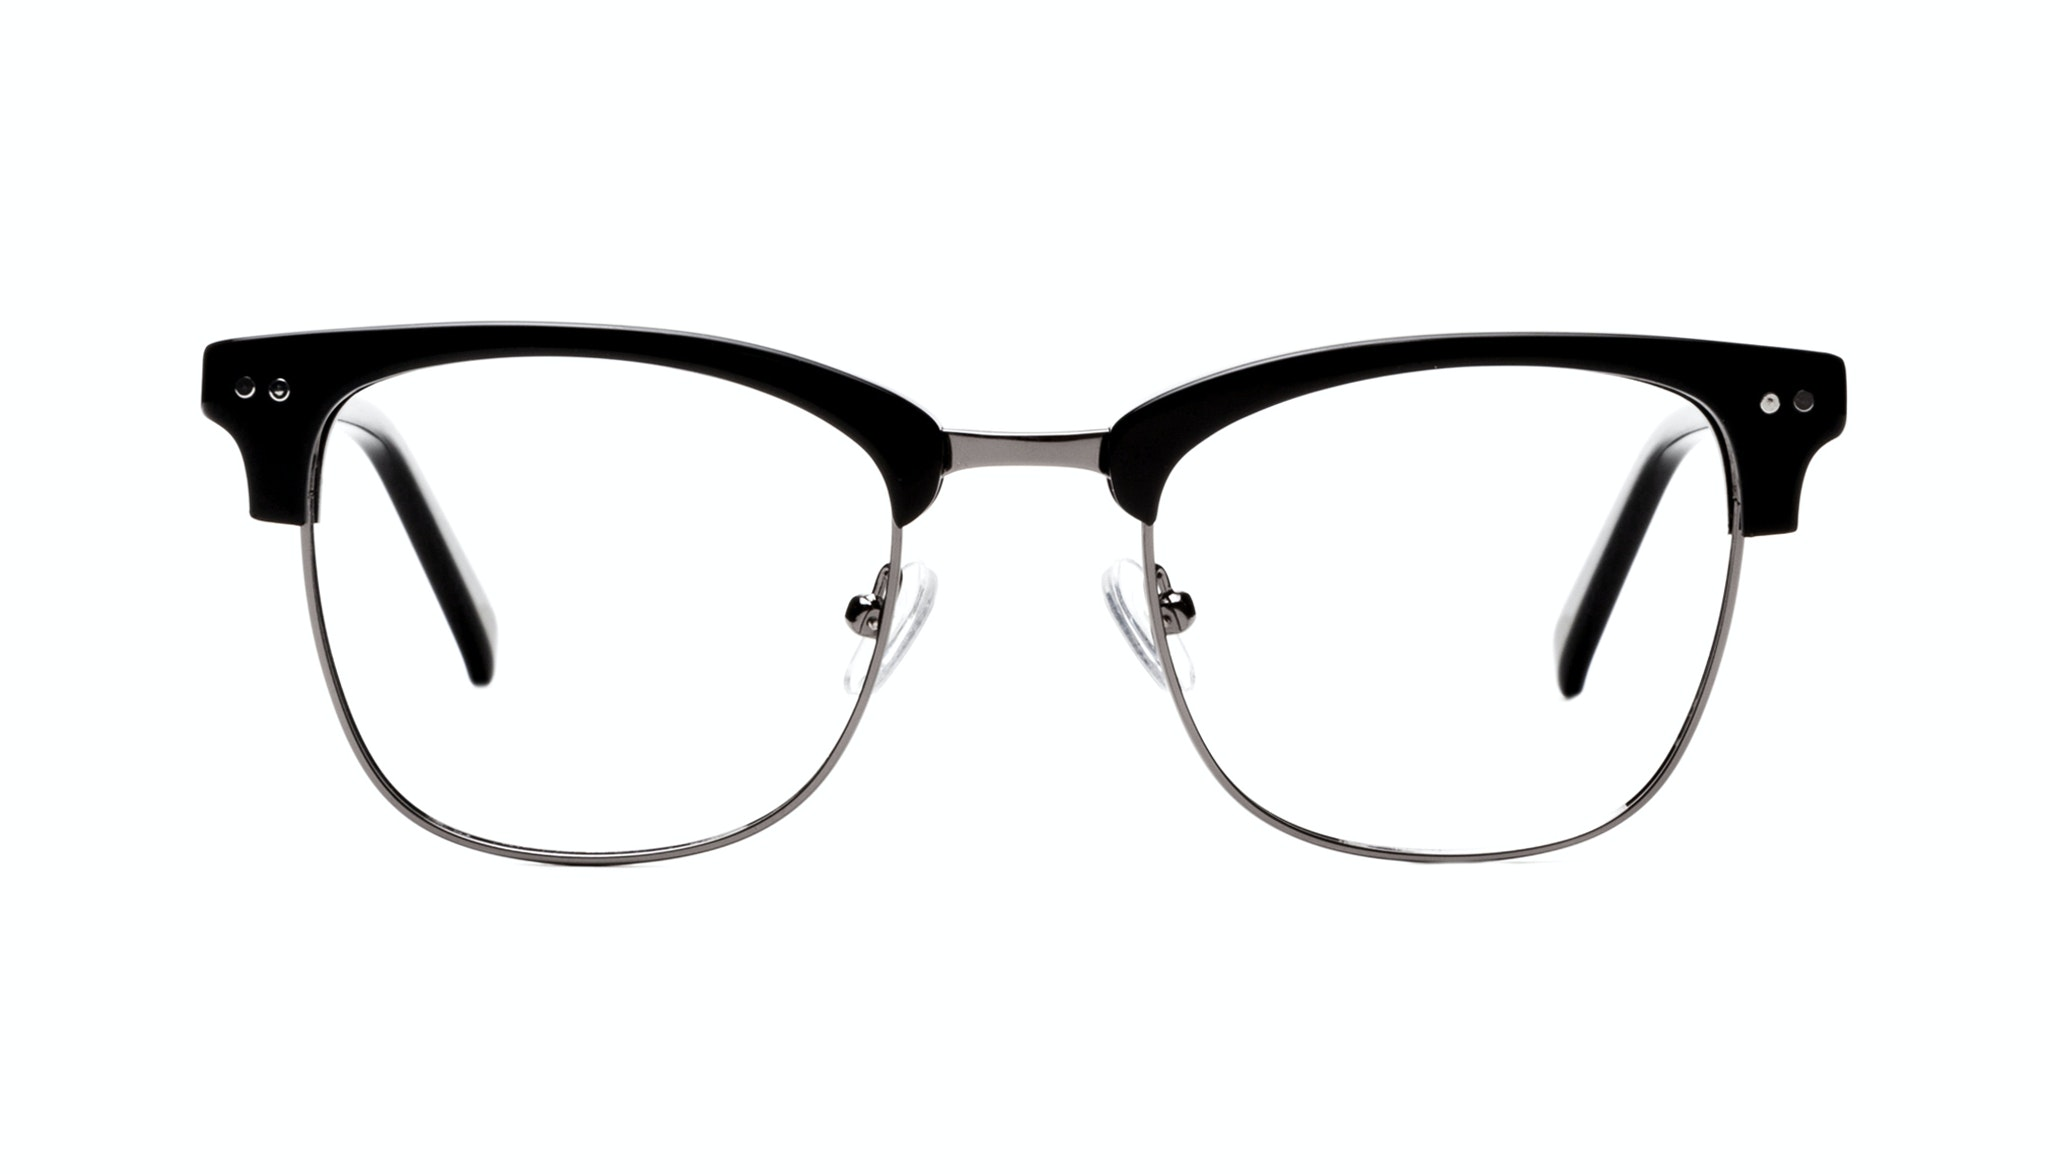 Affordable Fashion Glasses Square Eyeglasses Men Women Lift Onyx Front